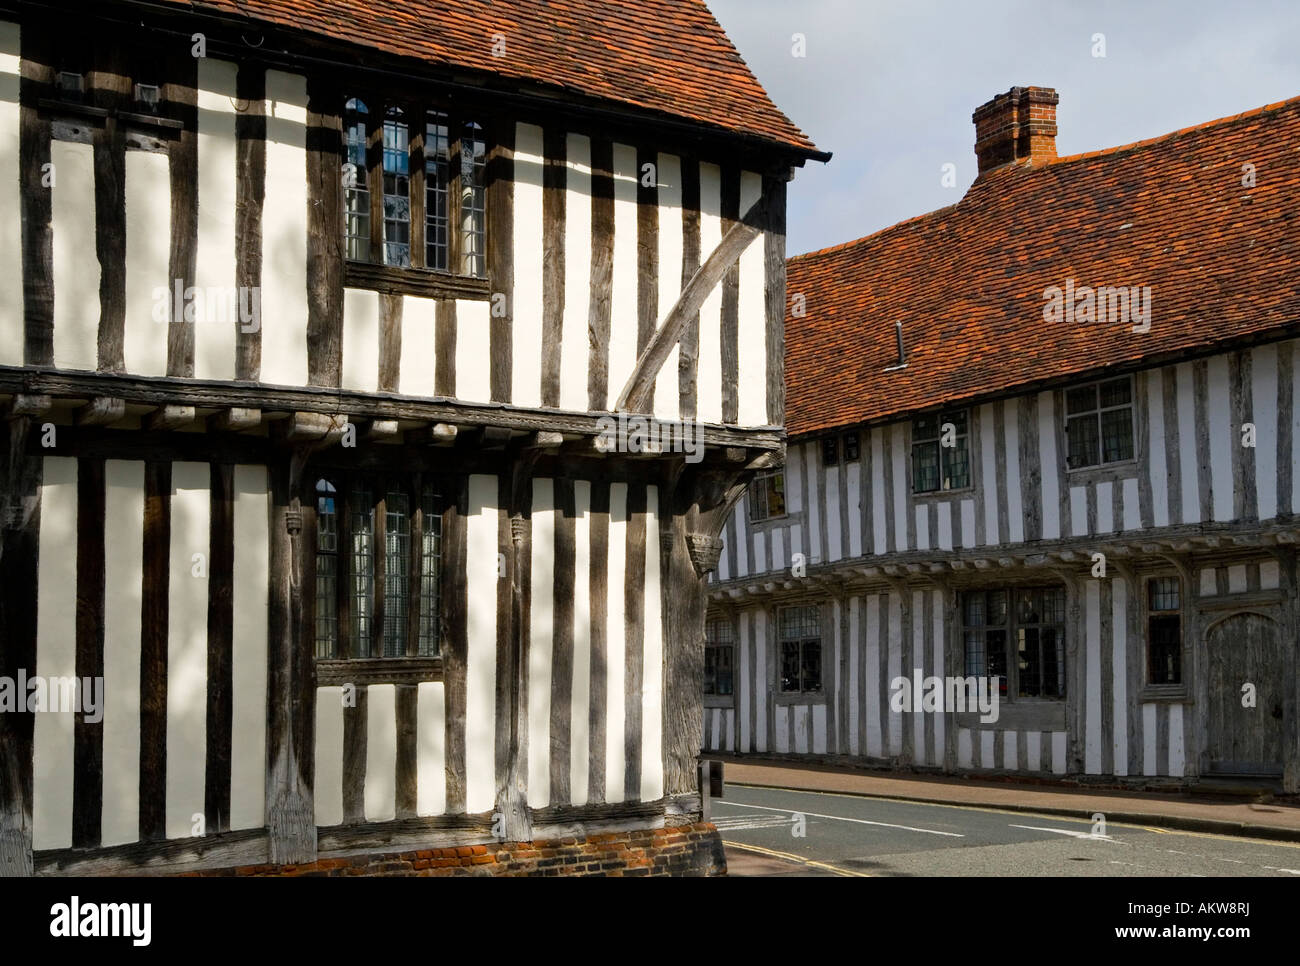 Half timbered traditional buildings in historic Lavenham Village Suffolk England UK with typical vernacular architecture - Stock Image